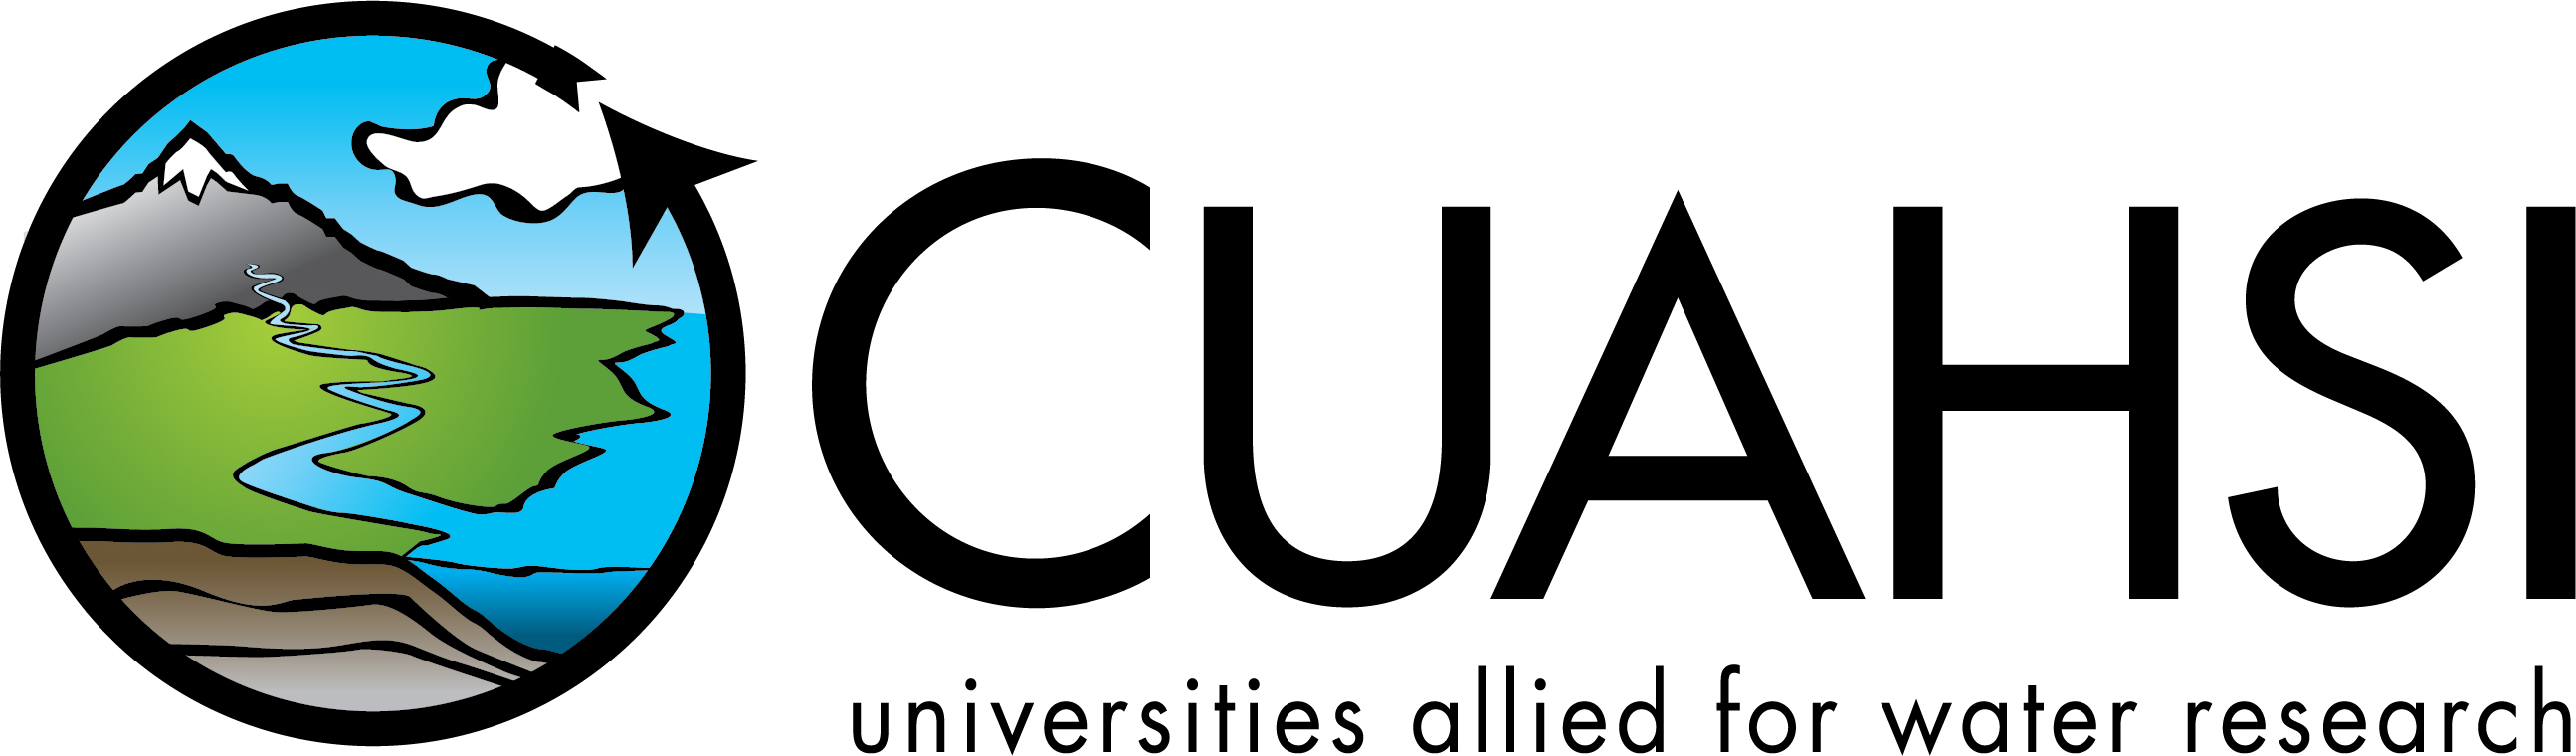 "CUAHSI logo with text ""universities allied for water research"""